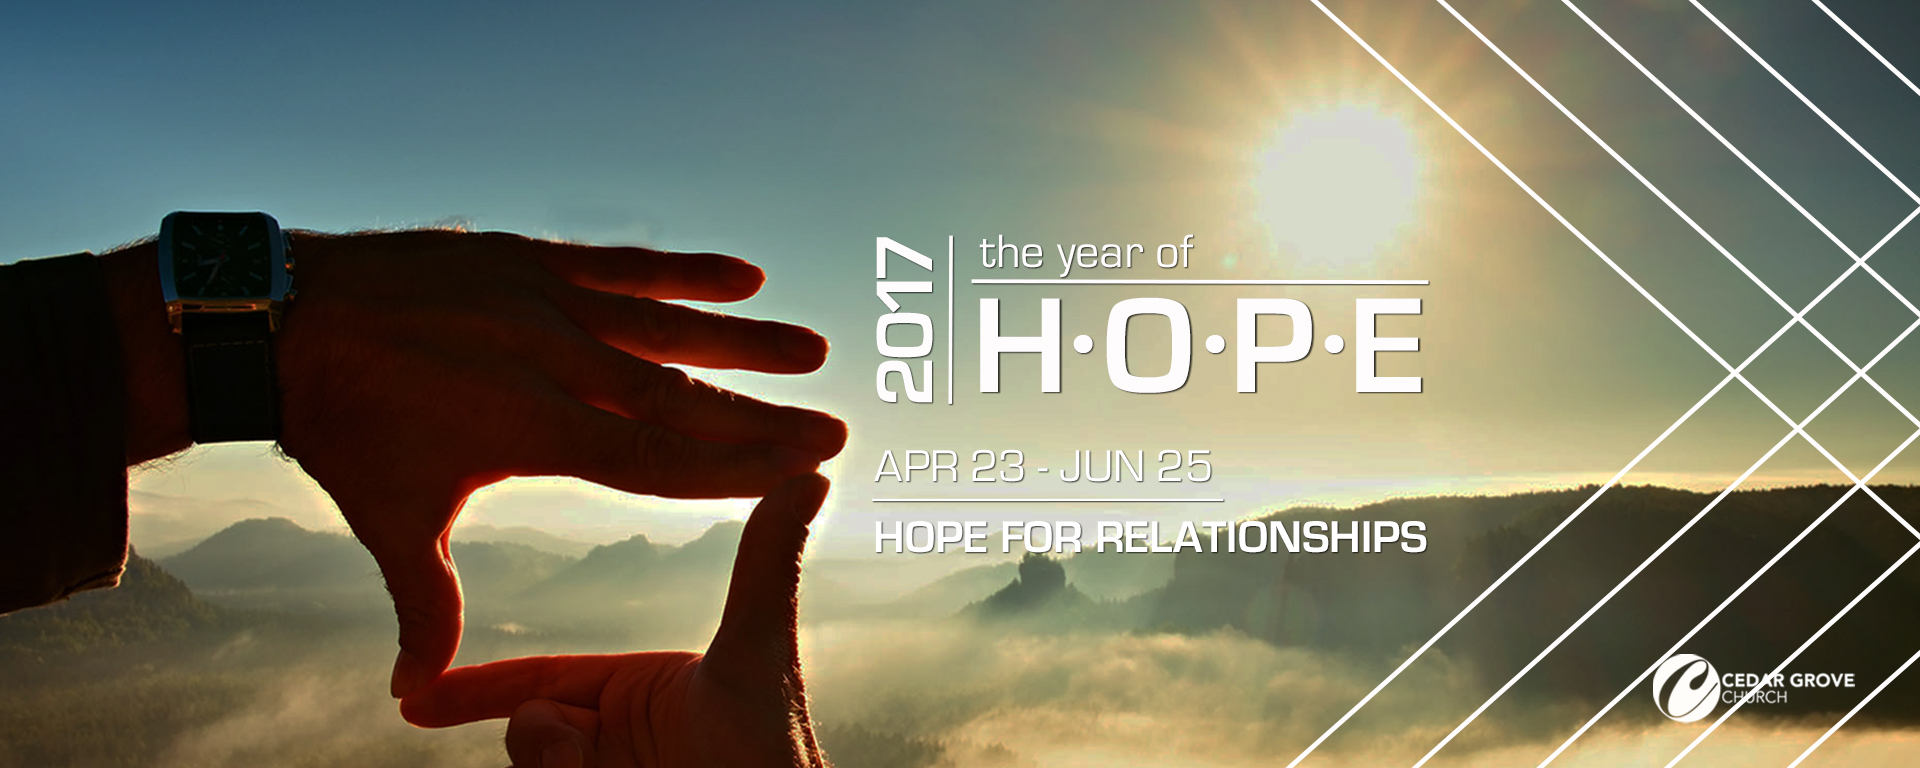 Year_of_Hope_Q2_2017_RR